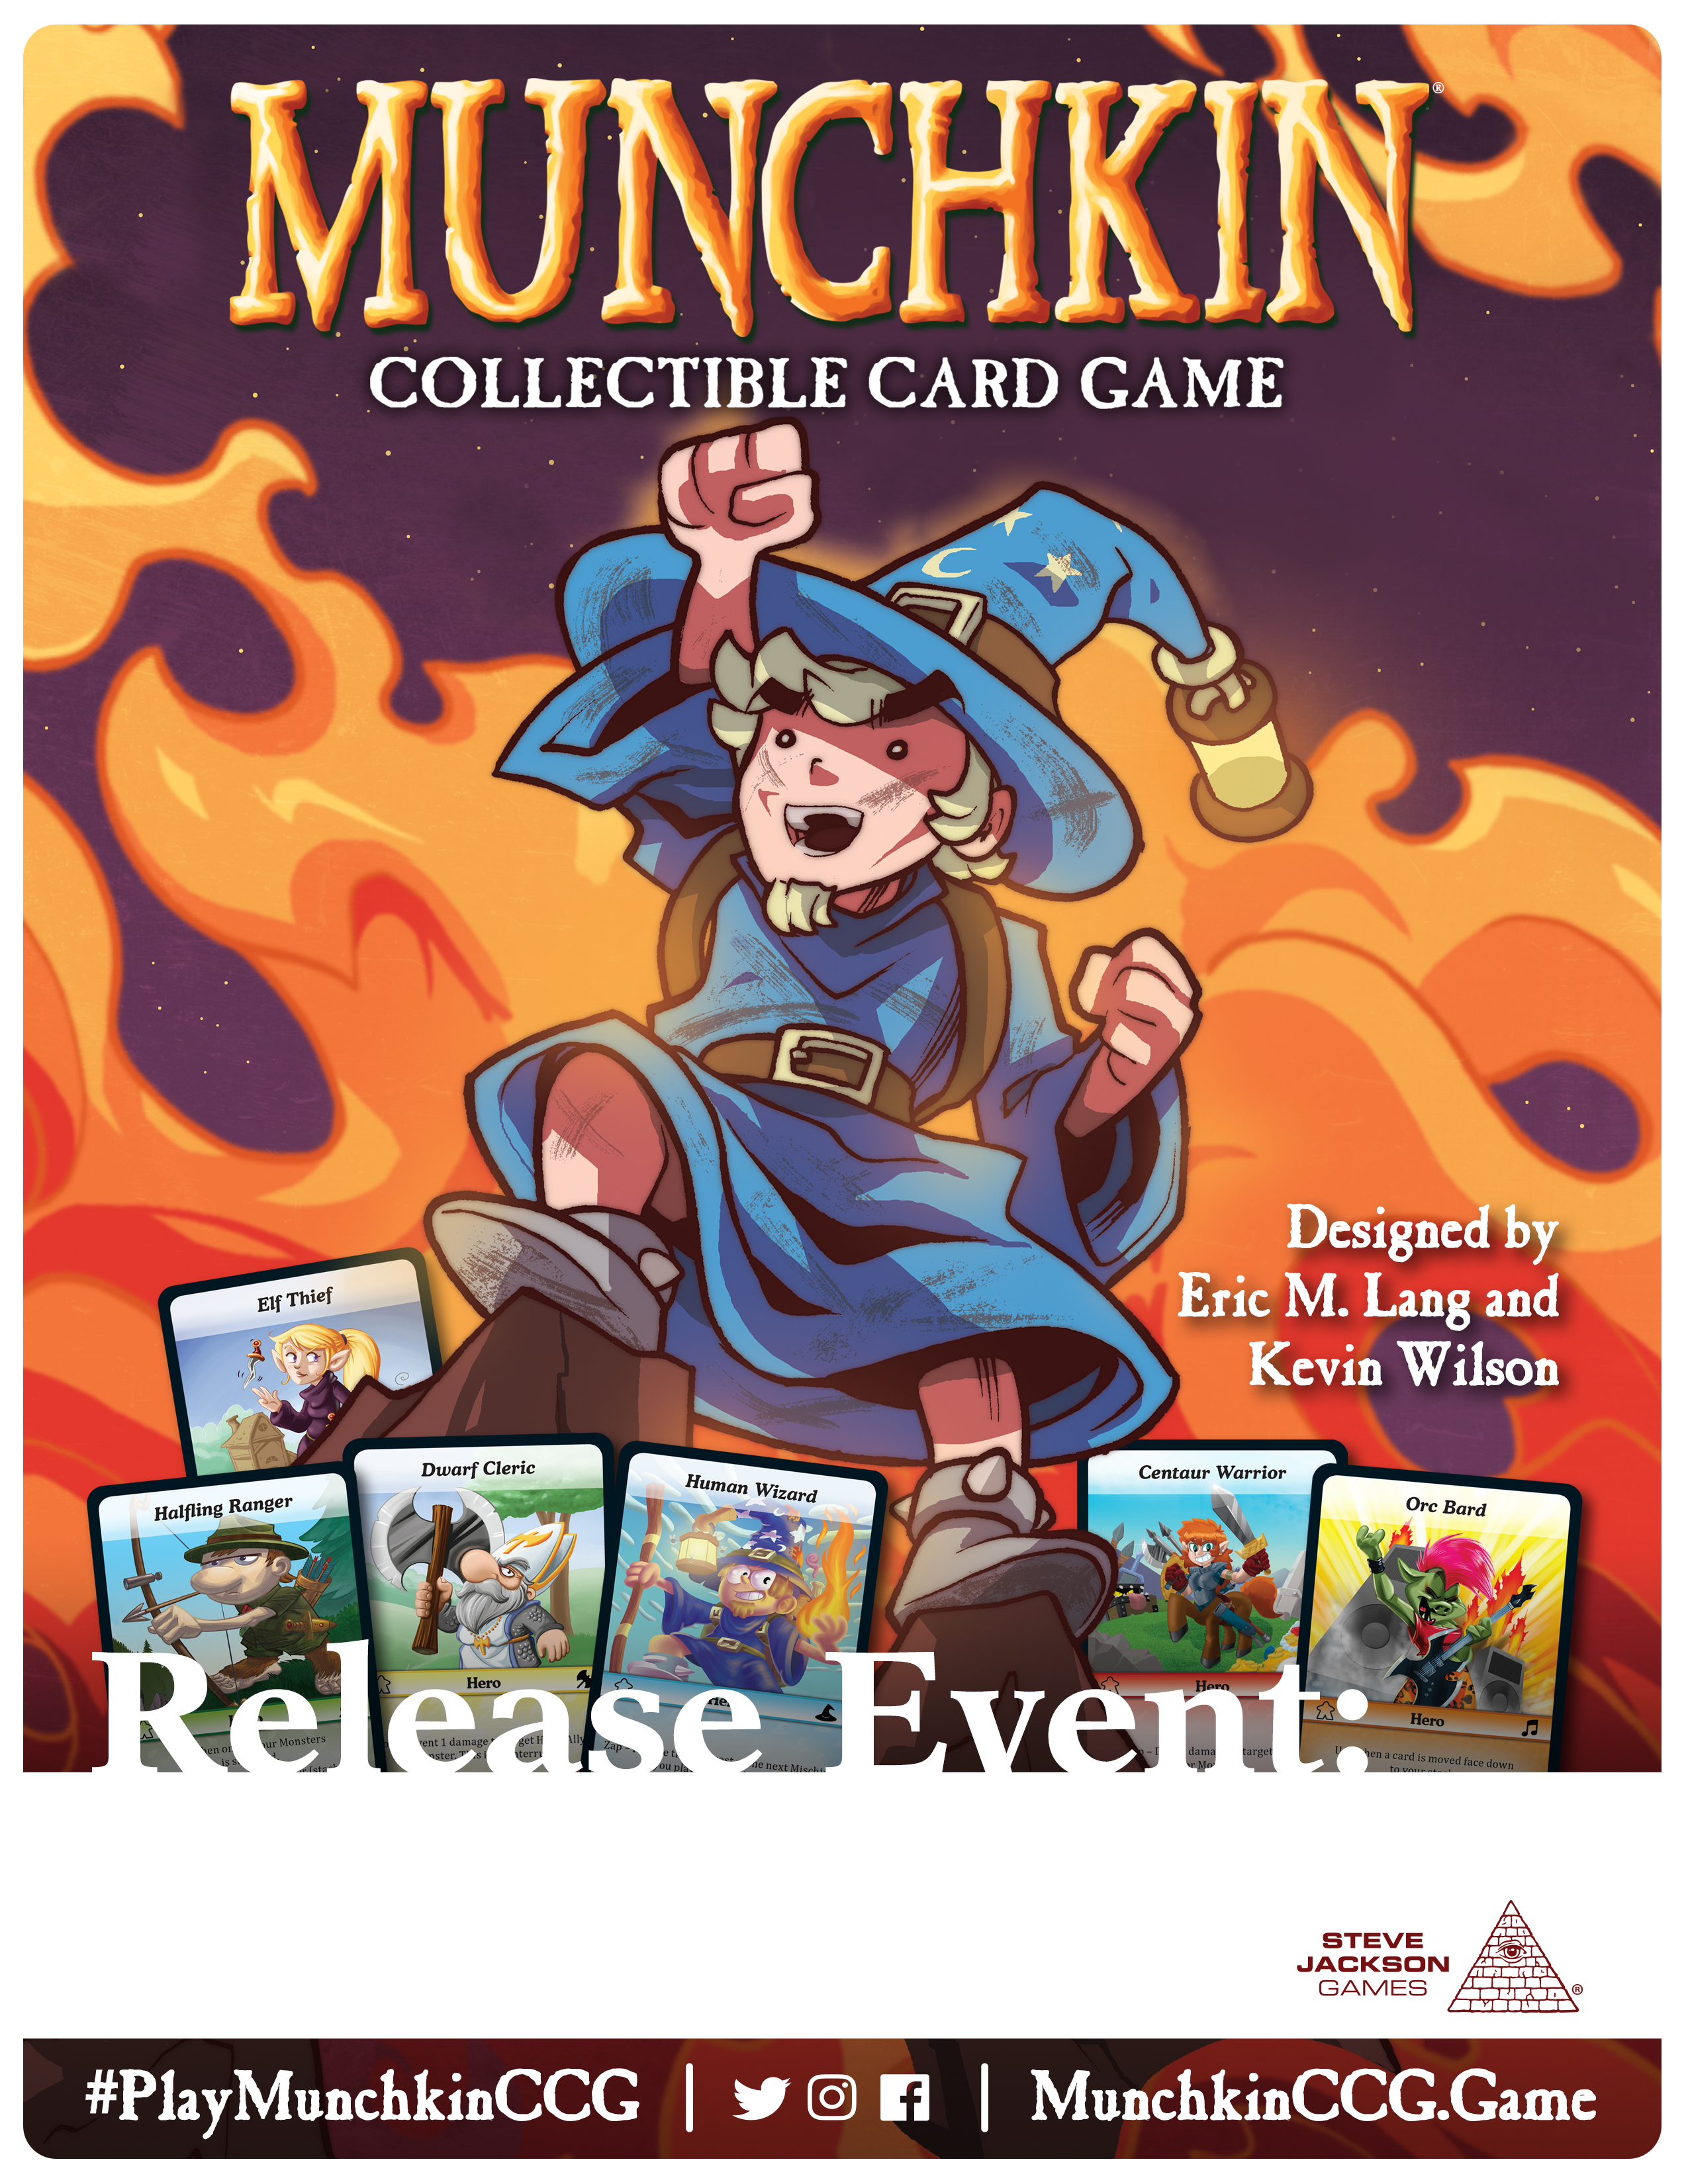 Munchkin Collectible Card Game Release Event Locations for March 2 - 4!